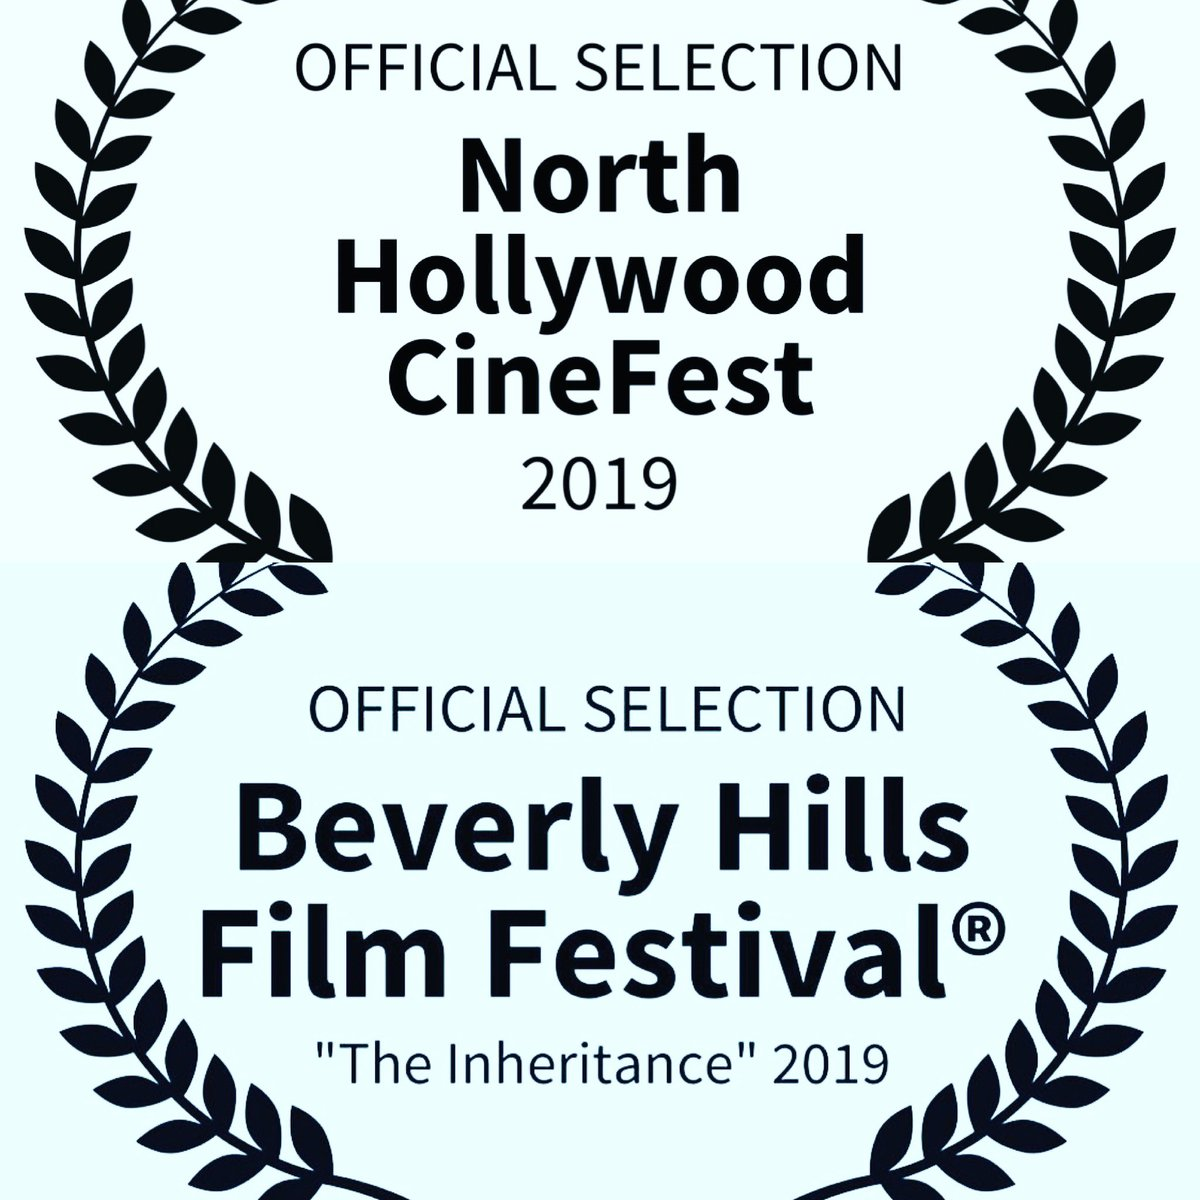 Cannot express how happy I am that my first ever film 'the inheritance' is now selected for two Hollywood film festivals. To be nominated like this is more than a dream come true. Thank you to @jhickox @JTS7767    a@DerrickCohann@yaarad@Caitlinalyn the rest of the team. Wow